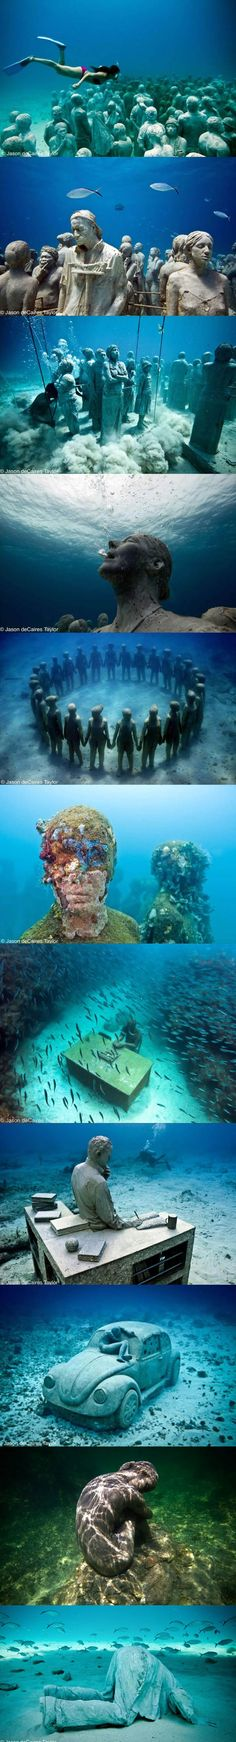 In 2009 a monumental underwater museum called MUSA (Museo Subacuático de Arte) was formed in the waters surrounding Cancun